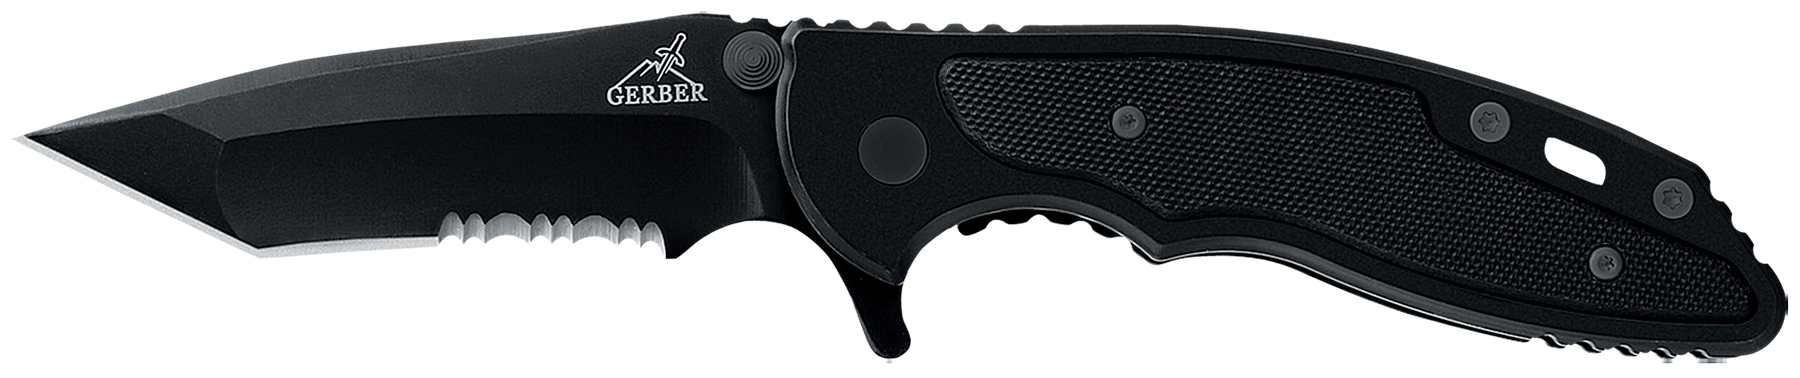 Gerber 01586 Torch Folder 440A Stainless Tanto Blade Stainless Steel w/ Machined